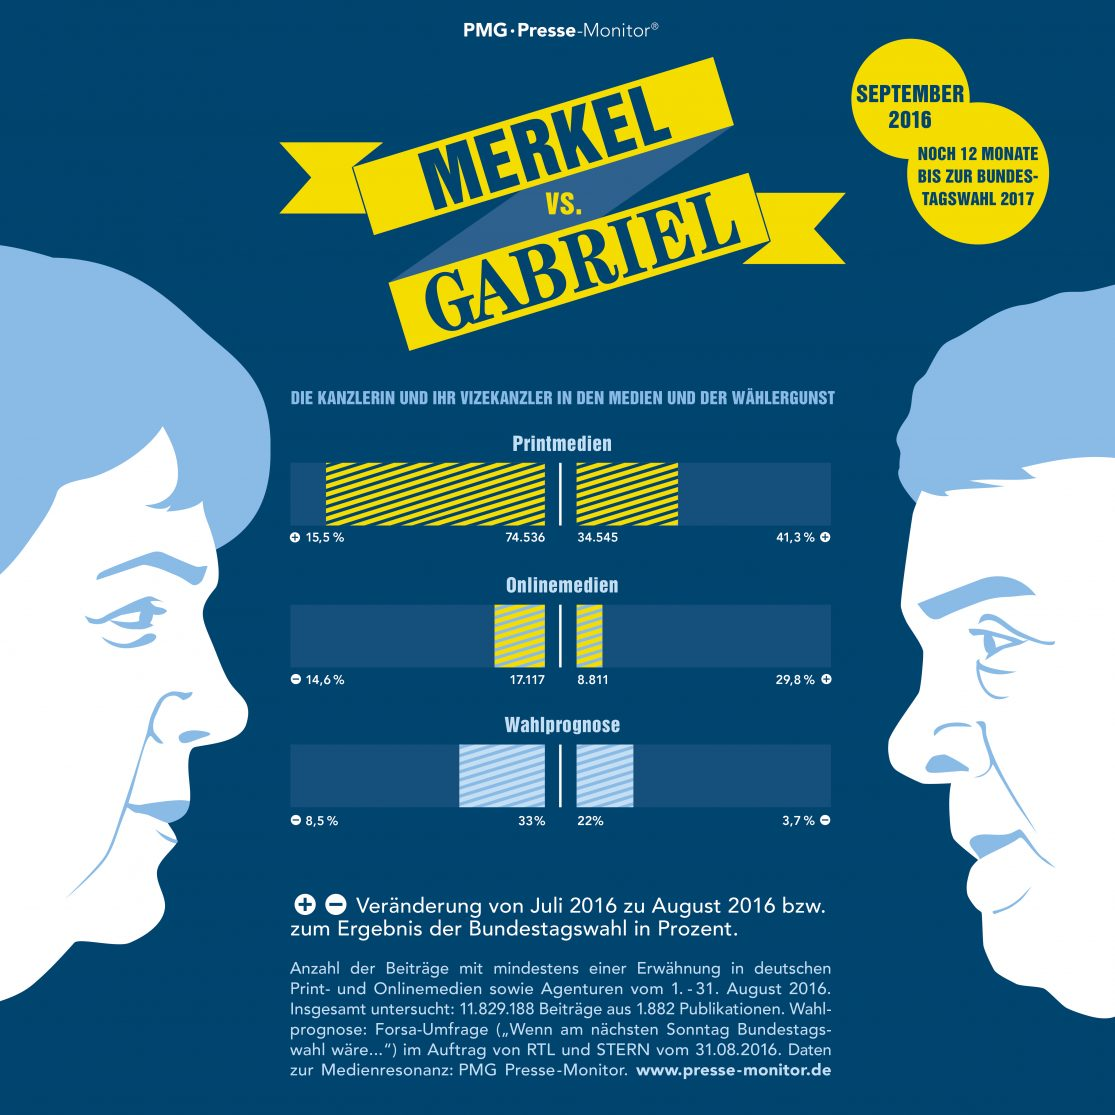 PMG Ranking: Angela Merkel vs. Sigmar Gabriel - September 2016